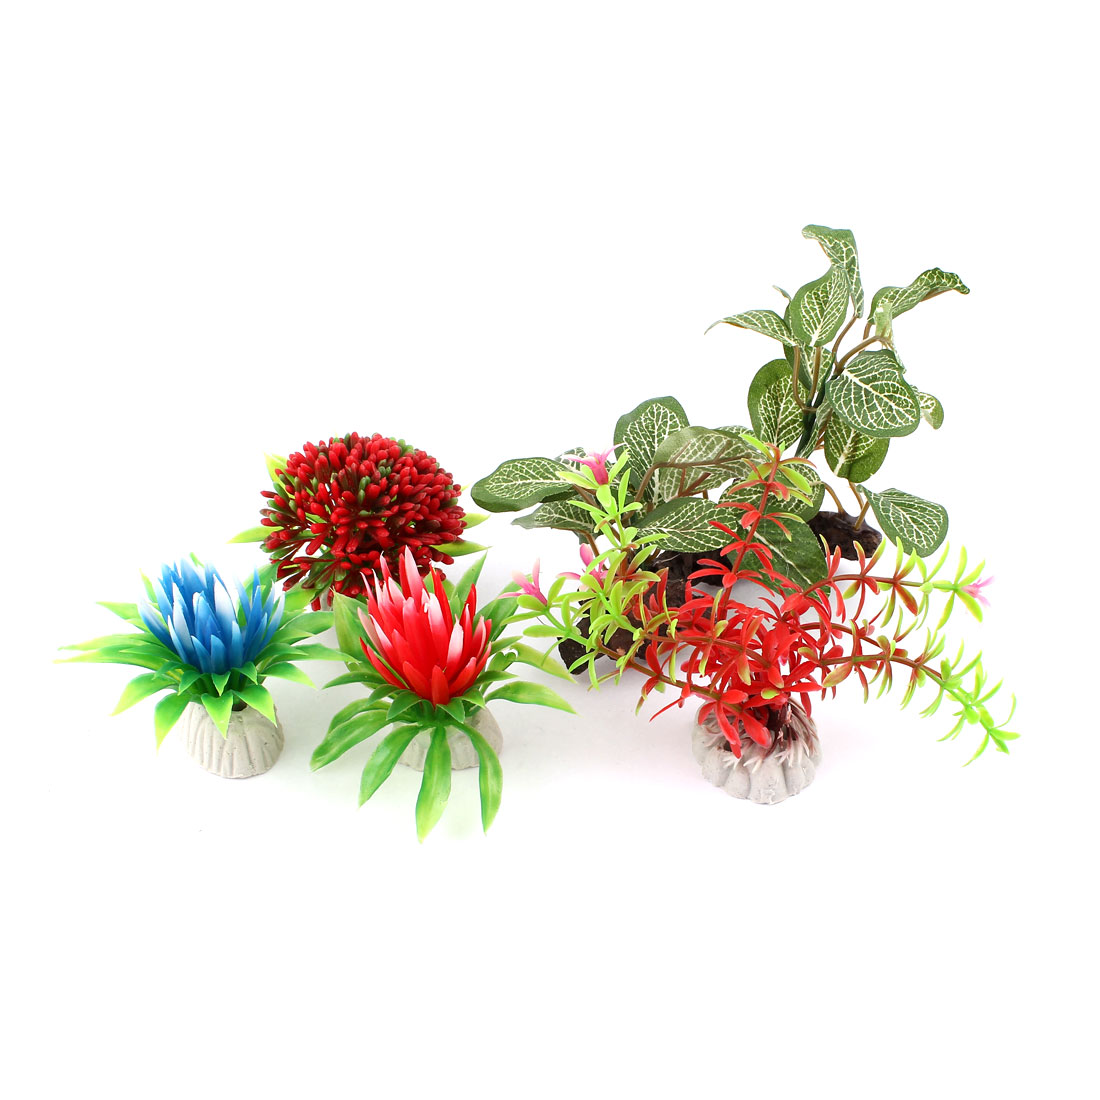 5pcs Plastic Emulational Floral Water Plants for Fish Tank